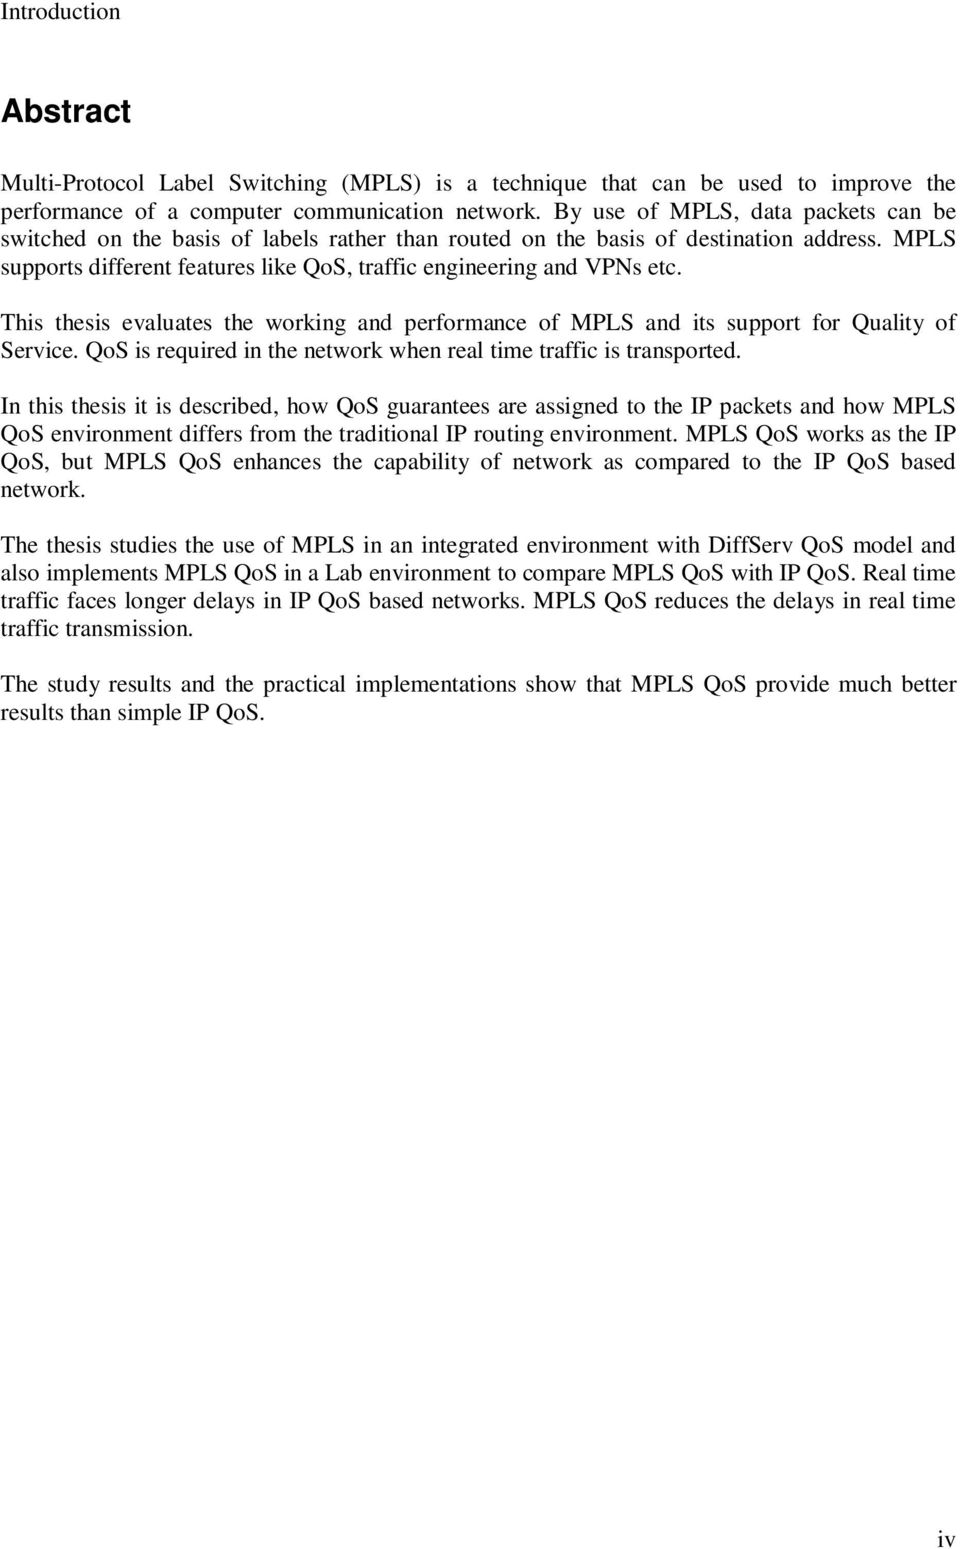 This thesis evaluates the working and performance of MPLS and its support for Quality of Service. QoS is required in the network when real time traffic is transported.